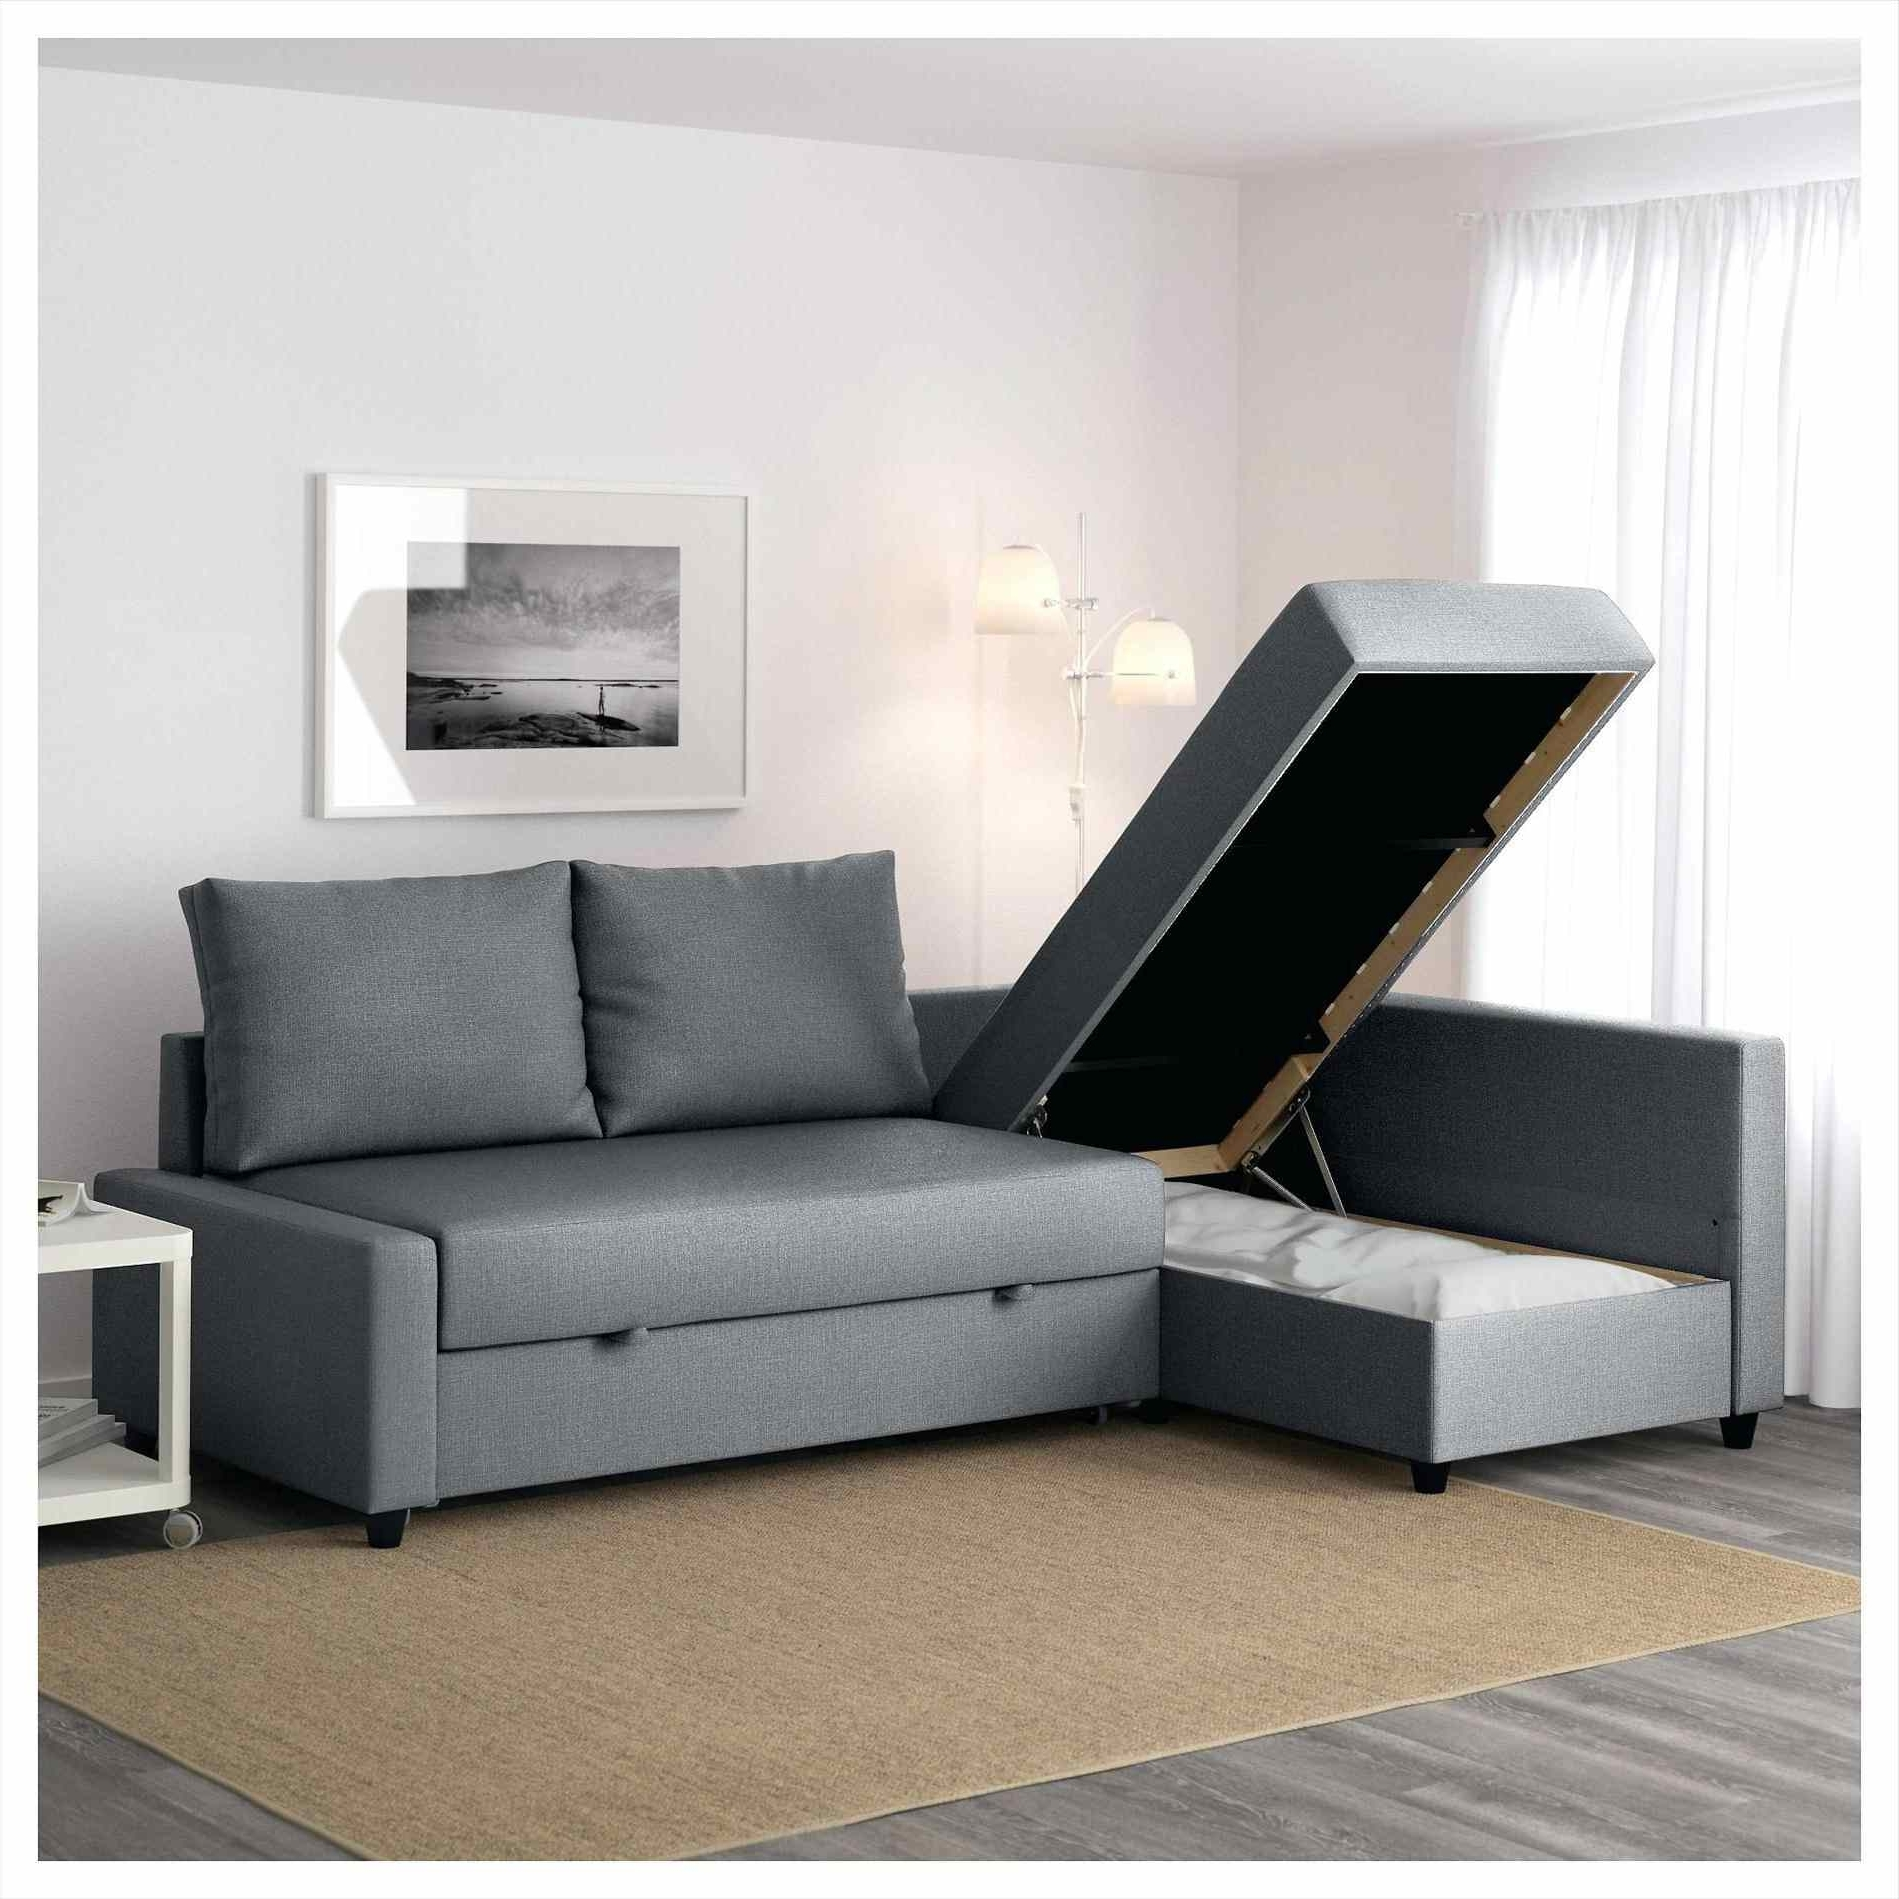 Famous Ikea Sofa Beds With Chaise Within Sofa : New At Ikea Corner Seat Hillared Dark Blue Corner Kivik (View 11 of 15)